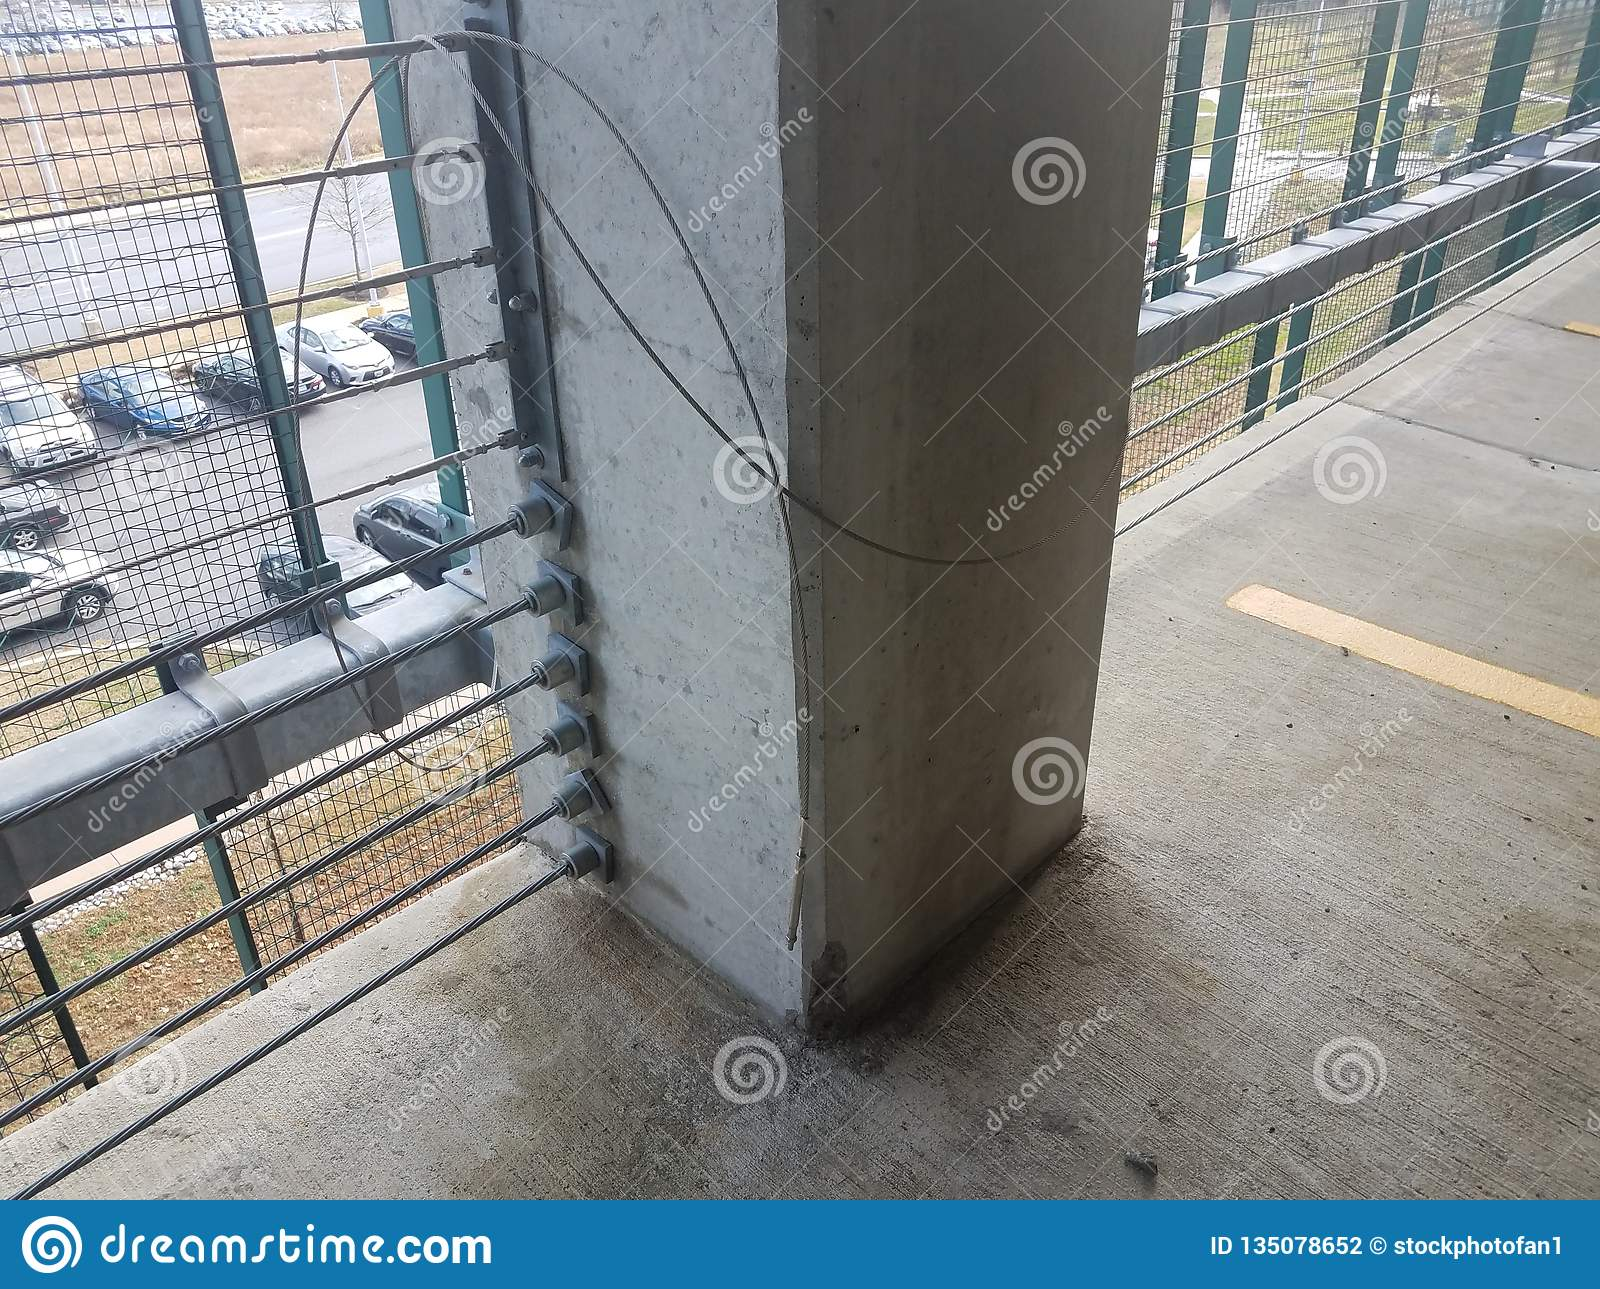 Cement Post In Parking Garage With Broken Wire Stock Photo - Image